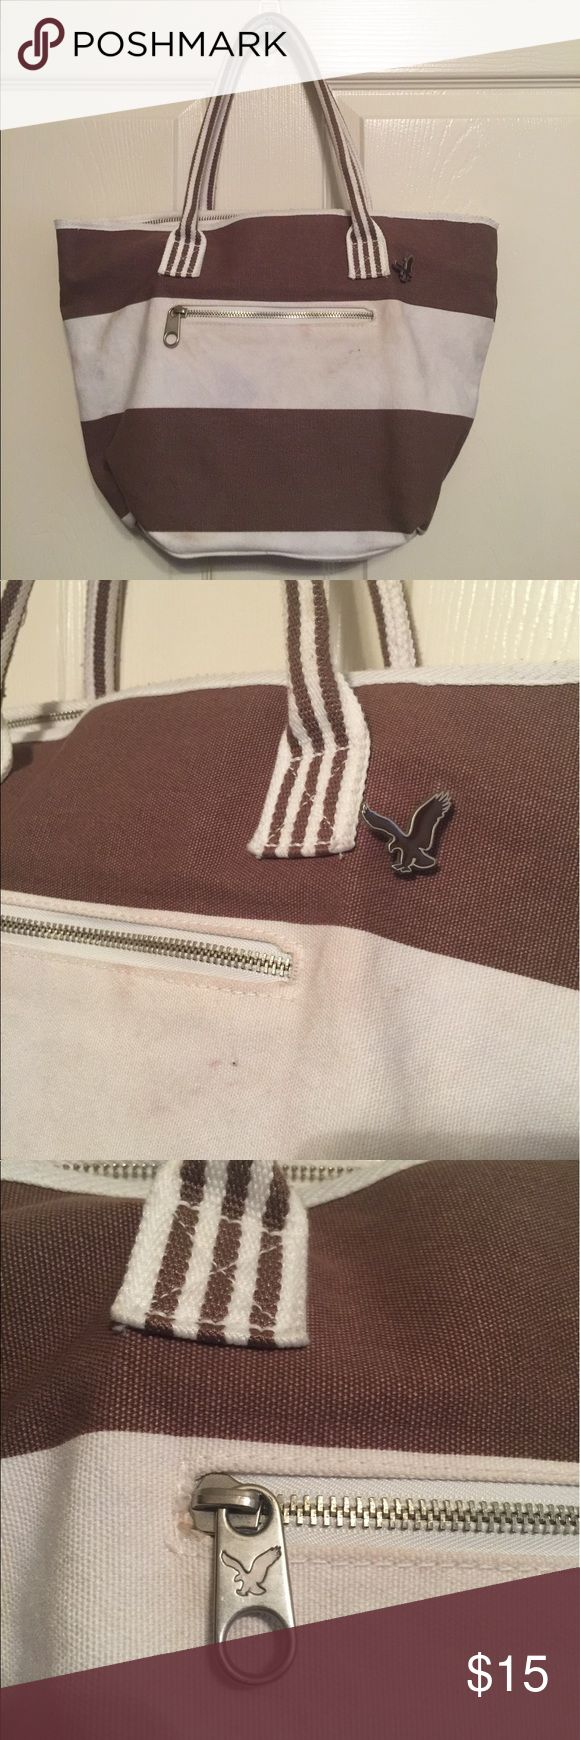 American eagle brown white stripe tote bag woman's Preowned American eagle brown white striped tote bag canvas style. It has some marks on it. Women's Ladies Fashion.  Check out my closet, we have a variety of women's, Victoria Secret, handbags 👜 purse 👛 Aerosoles, shoes 👠fashion jewelry, necklace, clothing, dress, Beauty, home 🏡 .  Ships via USPS. Smoke & Pet-Free. Offers 30% OFF bundle discount. Always a FREE GIFT 🎁 with every purchase!!! Thank you. American Eagle Outfitters Bags…